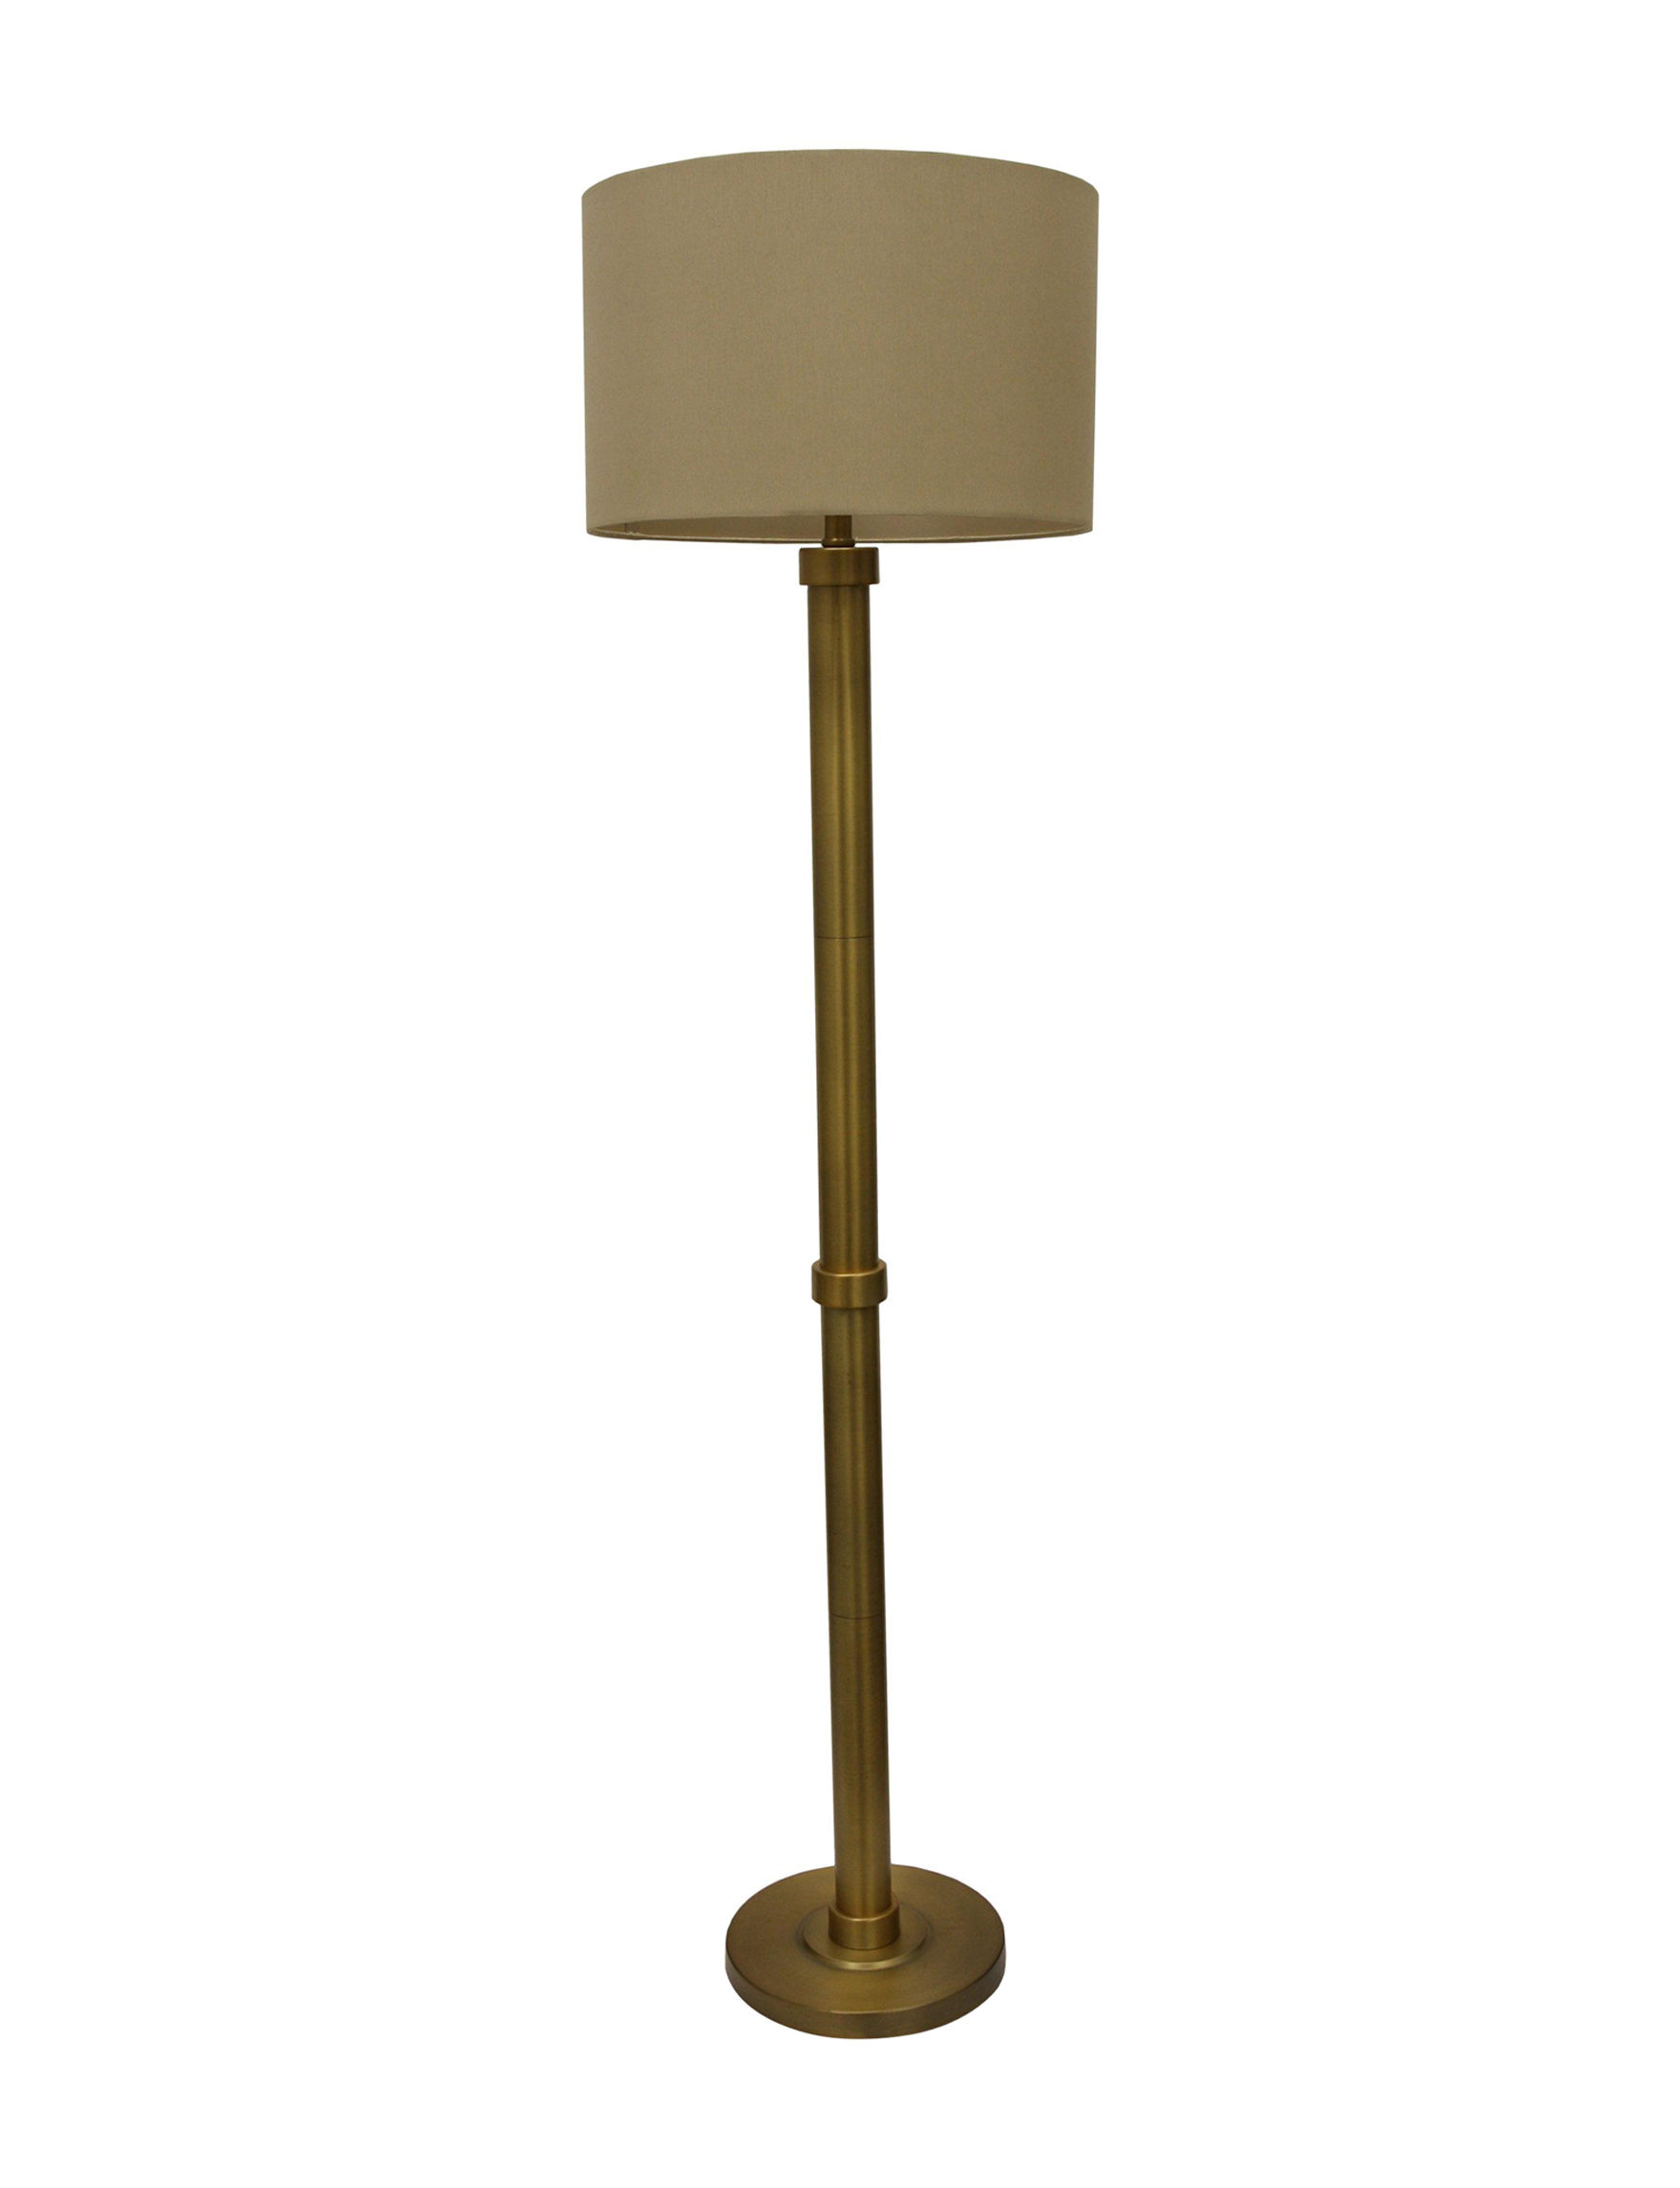 Decor Therapy Brass Floor Lamps Lighting & Lamps